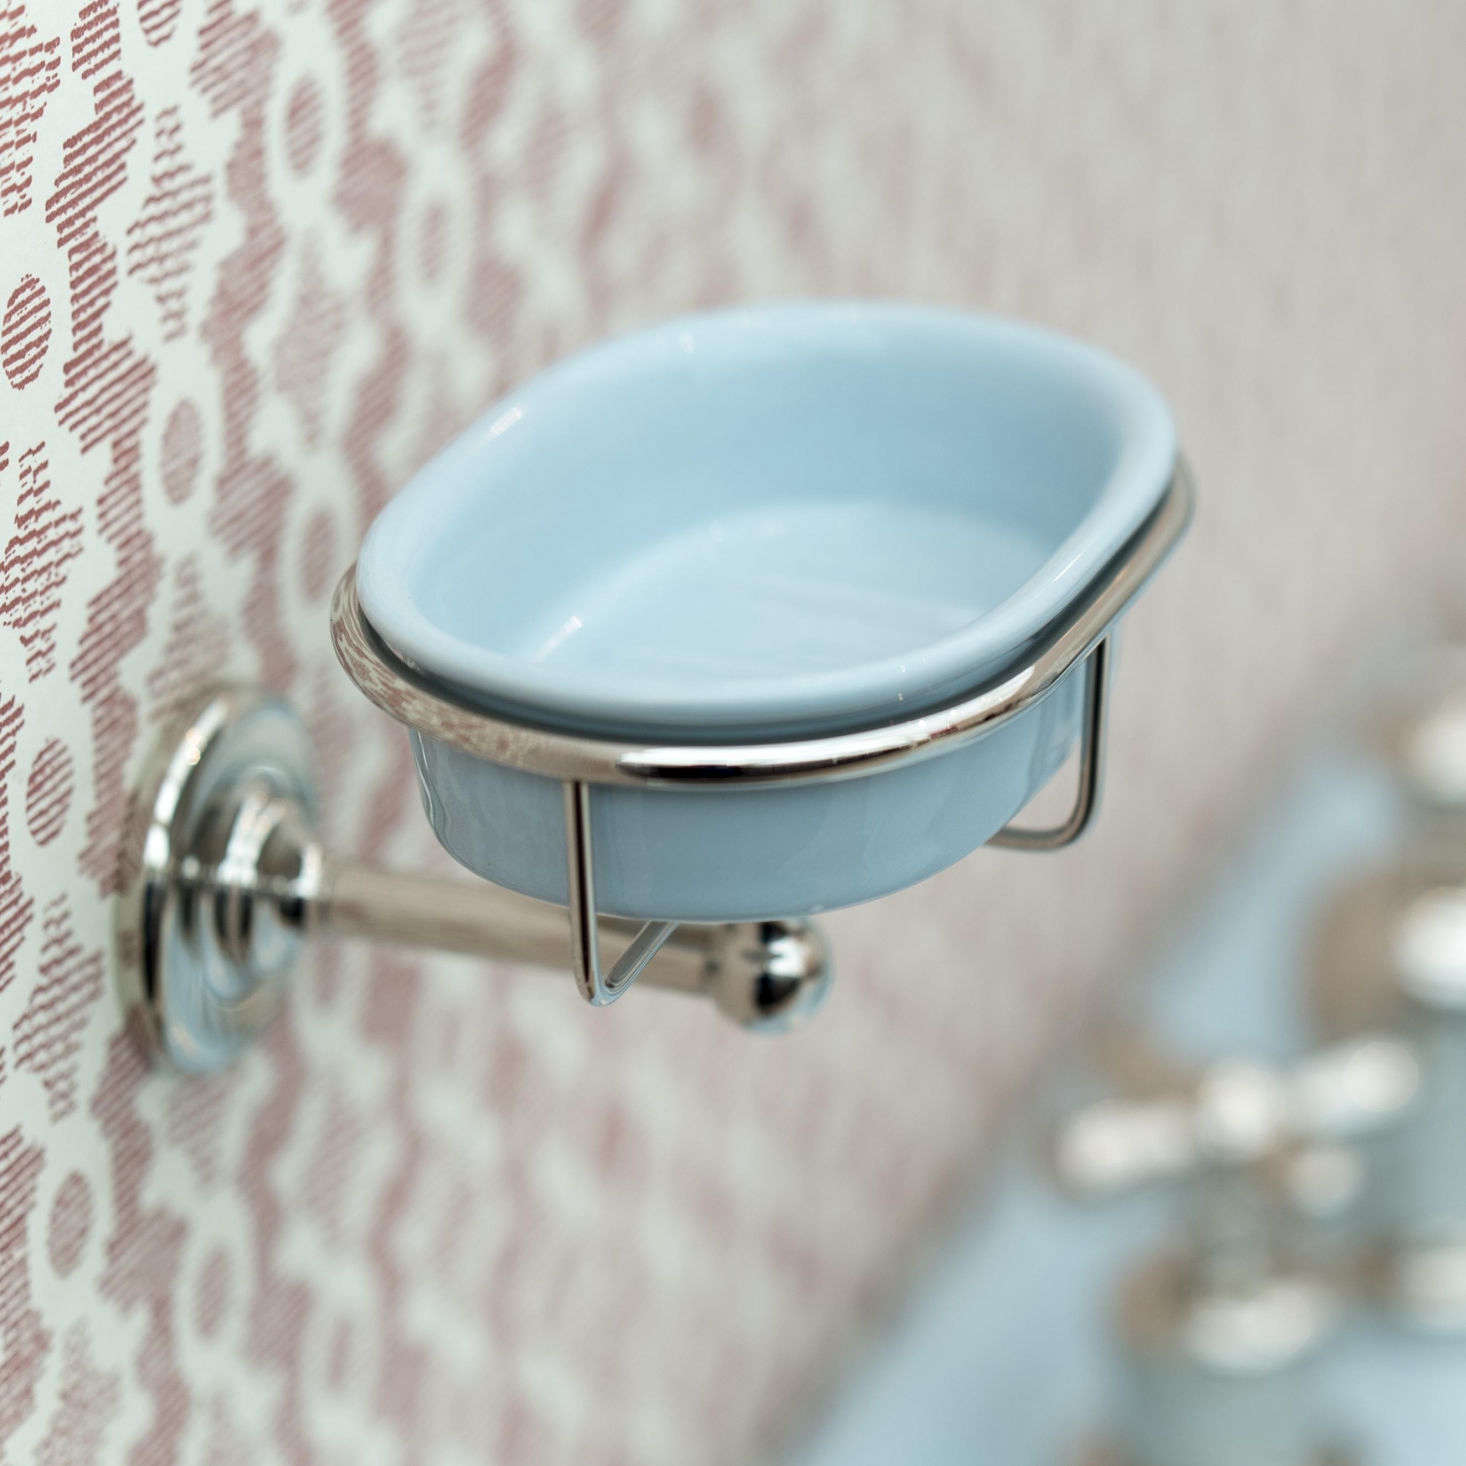 Retro Bath Fixtures in Retro Colors from the Water Monopoly ...